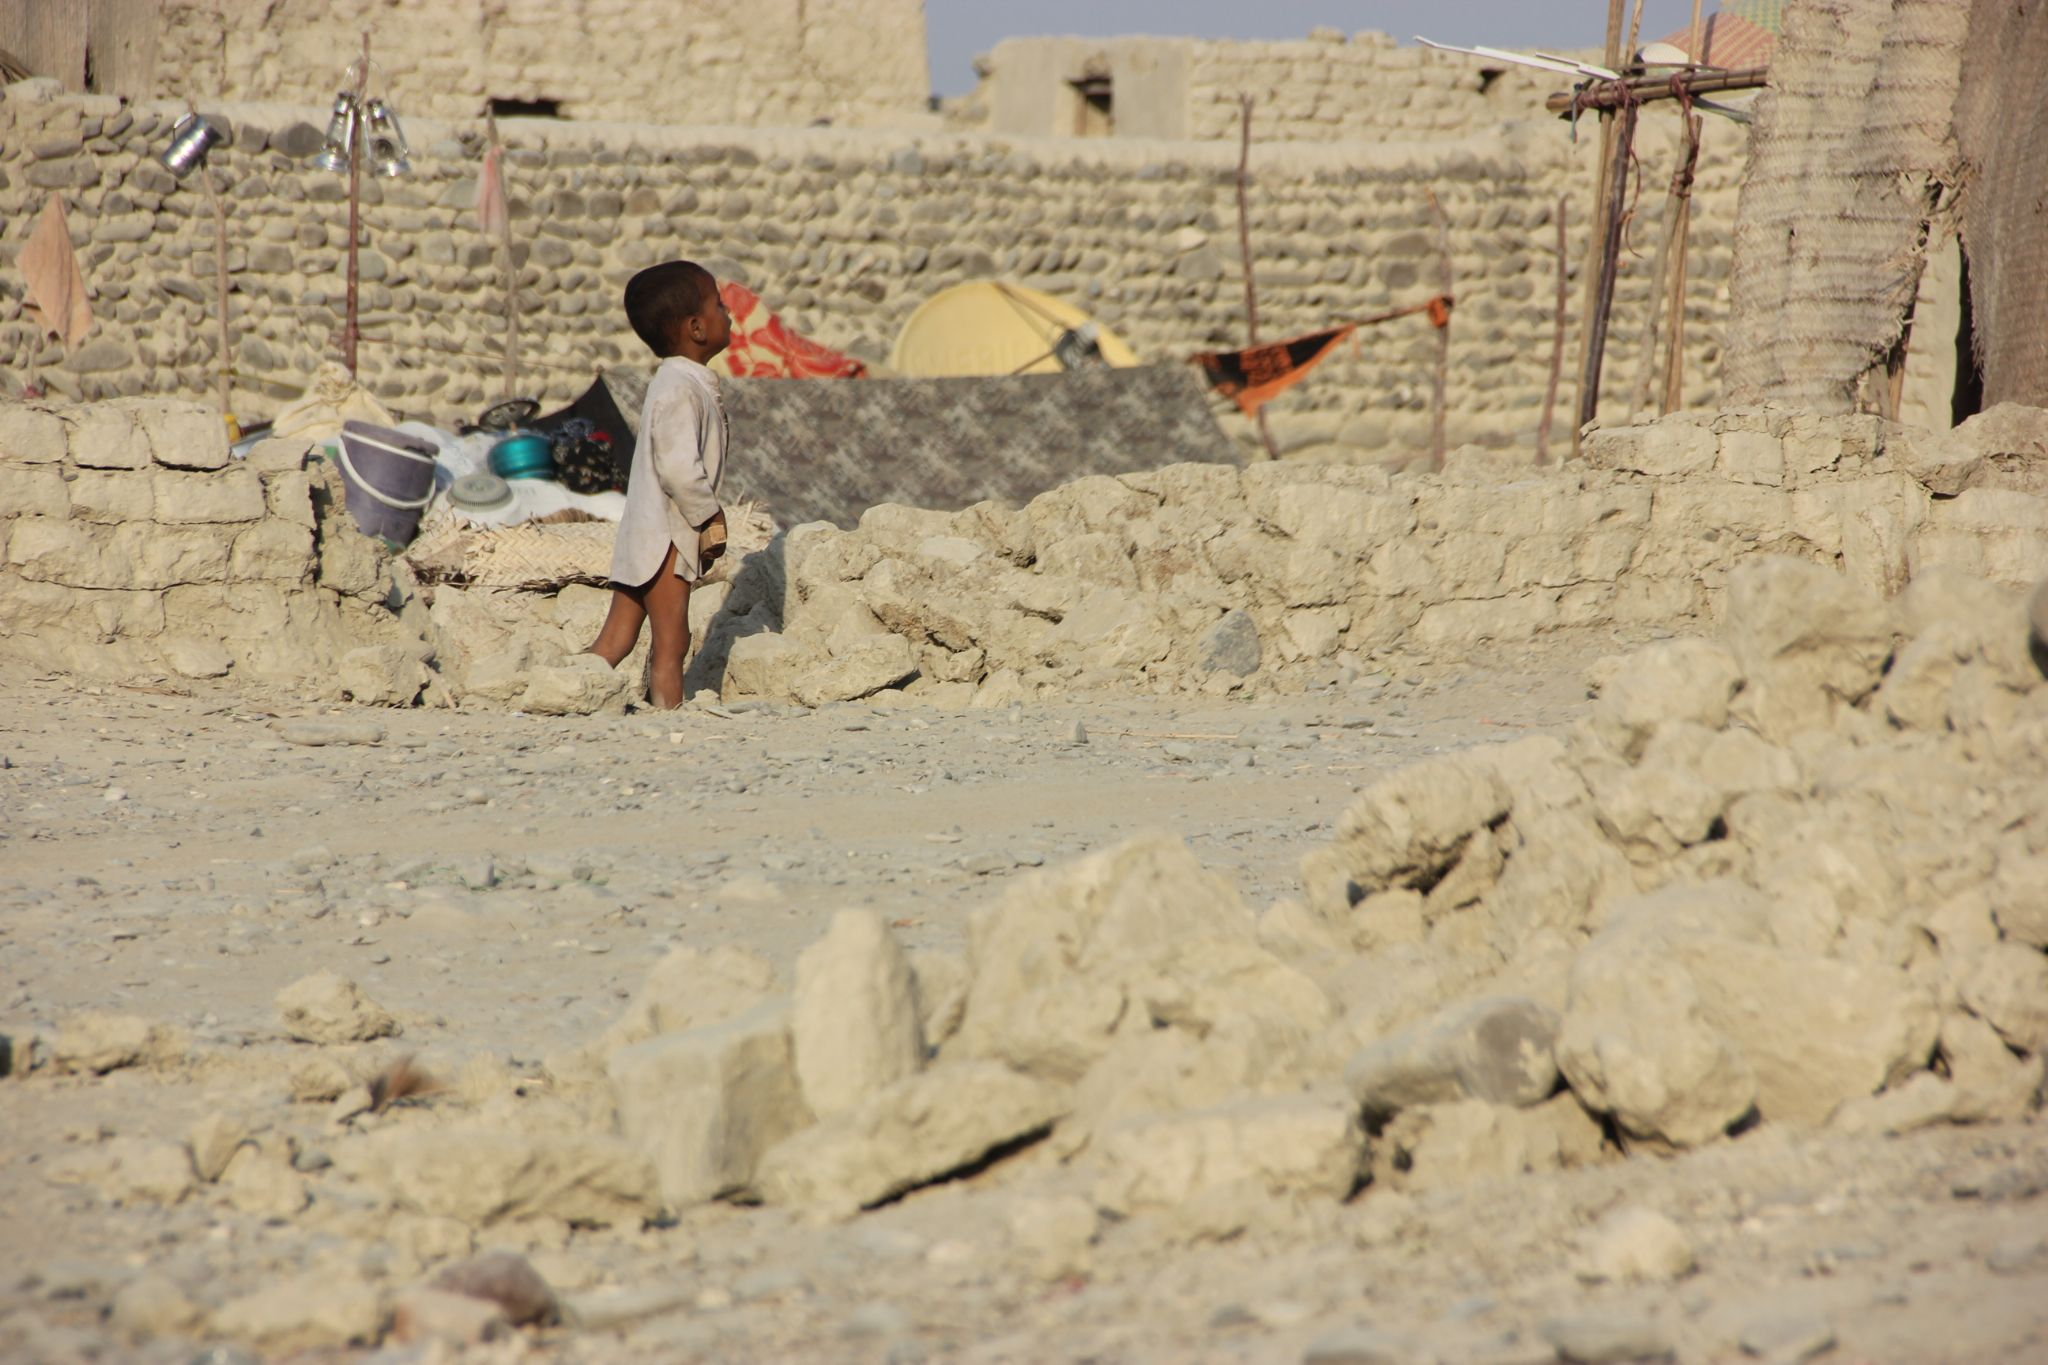 Balochistan earthquake off your home to a child crying in sorrow by rahibaba.izback